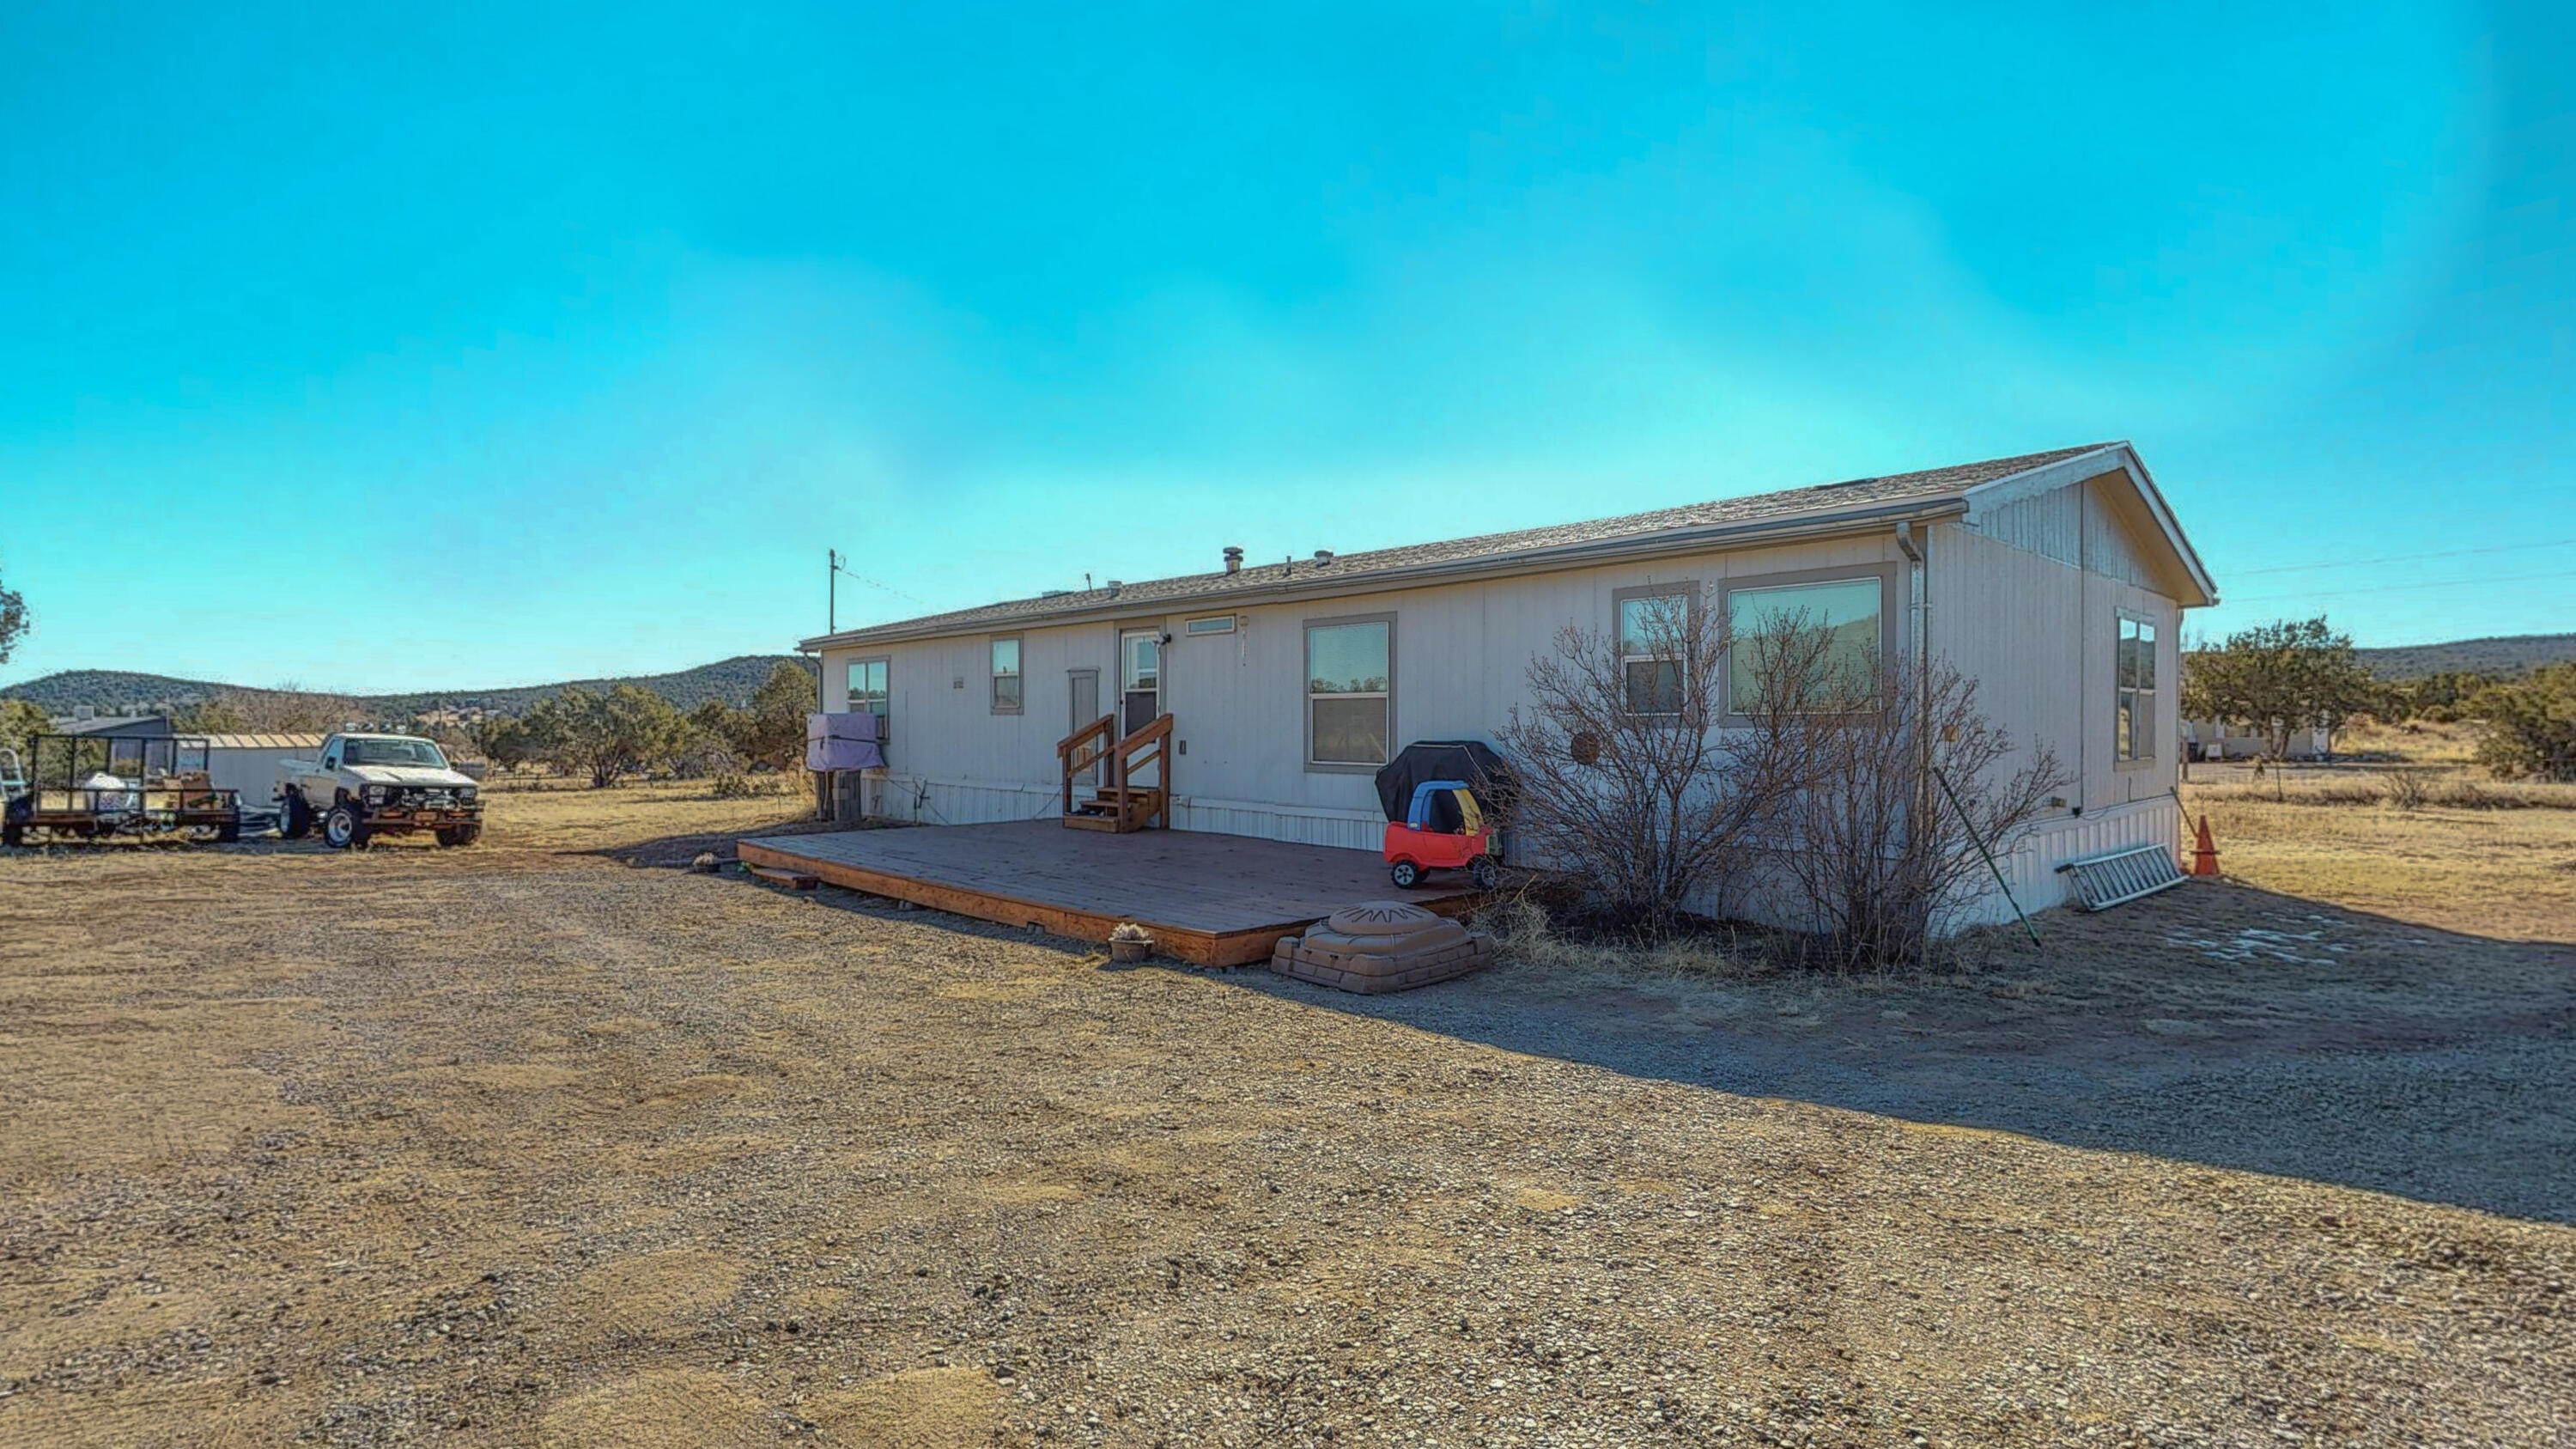 Peace and quiet with GORGEOUS views!! 4 bedrooms and 2 bathrooms on 1.75 acres...perfect family starter home!  Room for the kids to play and everyone's toys. Ready for your updates, garden, or animals.